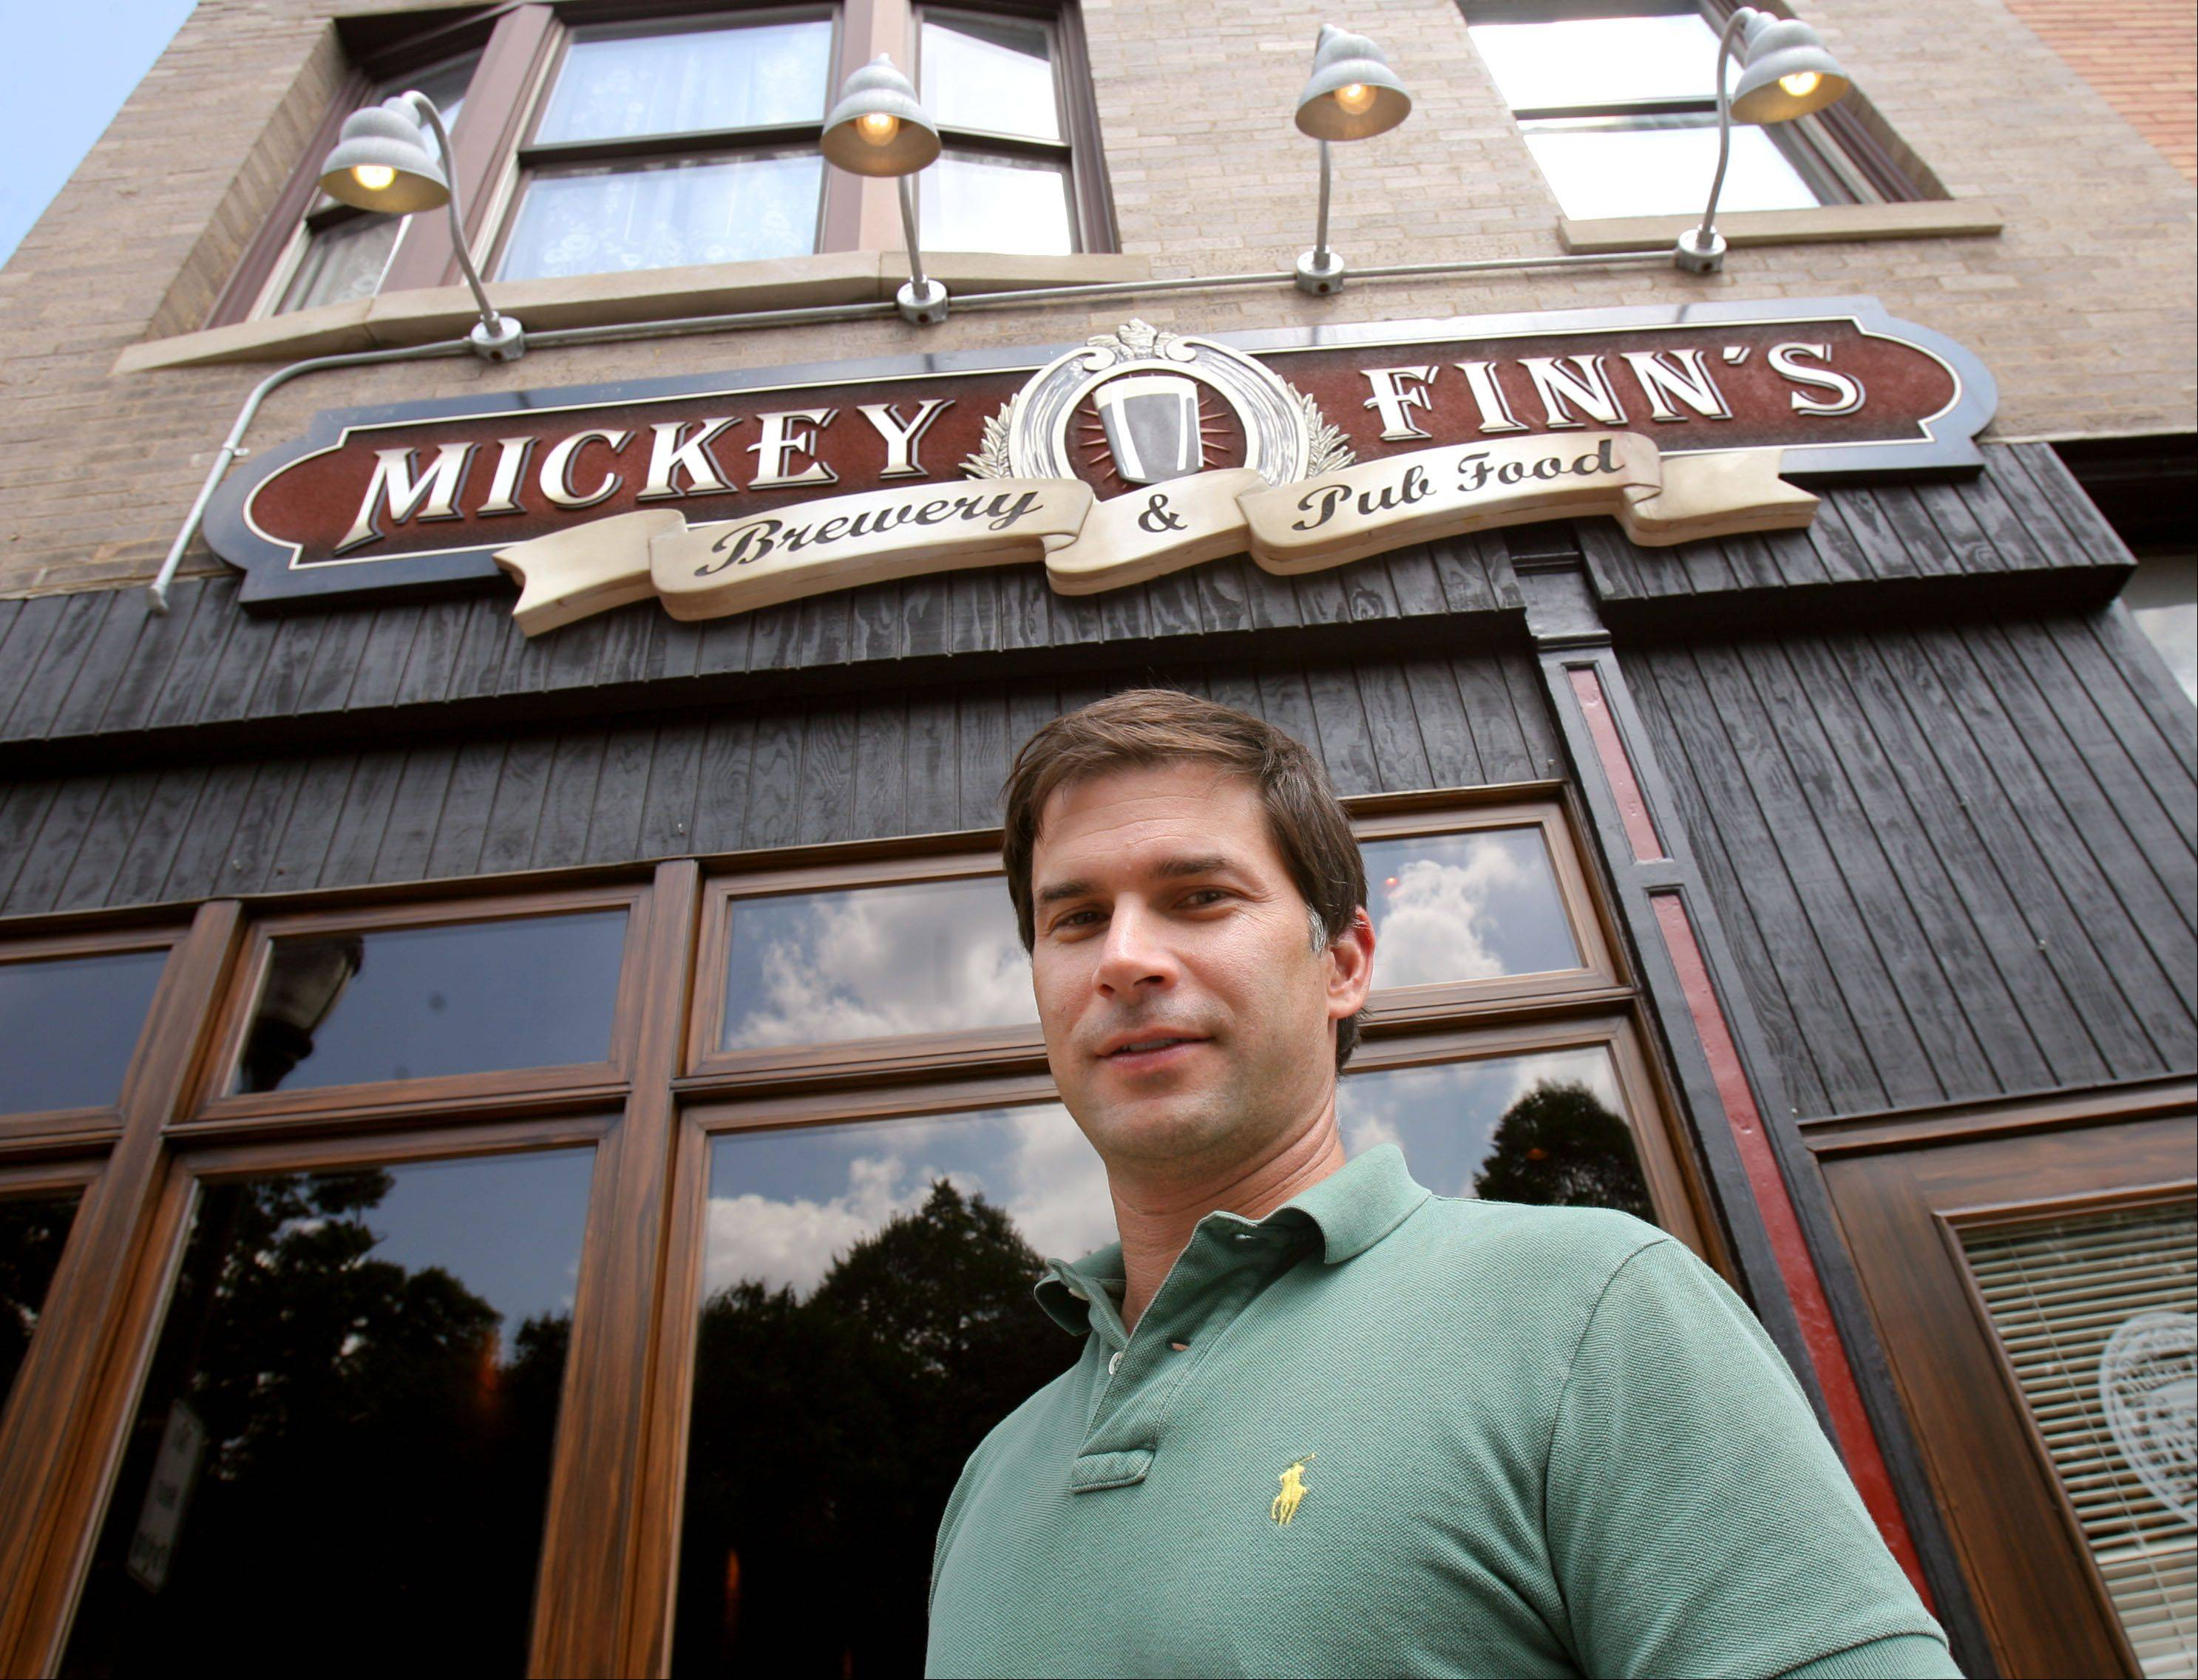 With Thanksgiving Eve being one of the busiest bar nights of the year, owner Brian Grano is bringing in extra servers and barkeepers to handle the Wednesday night crowd at Mickey Finn's in Libertyville.